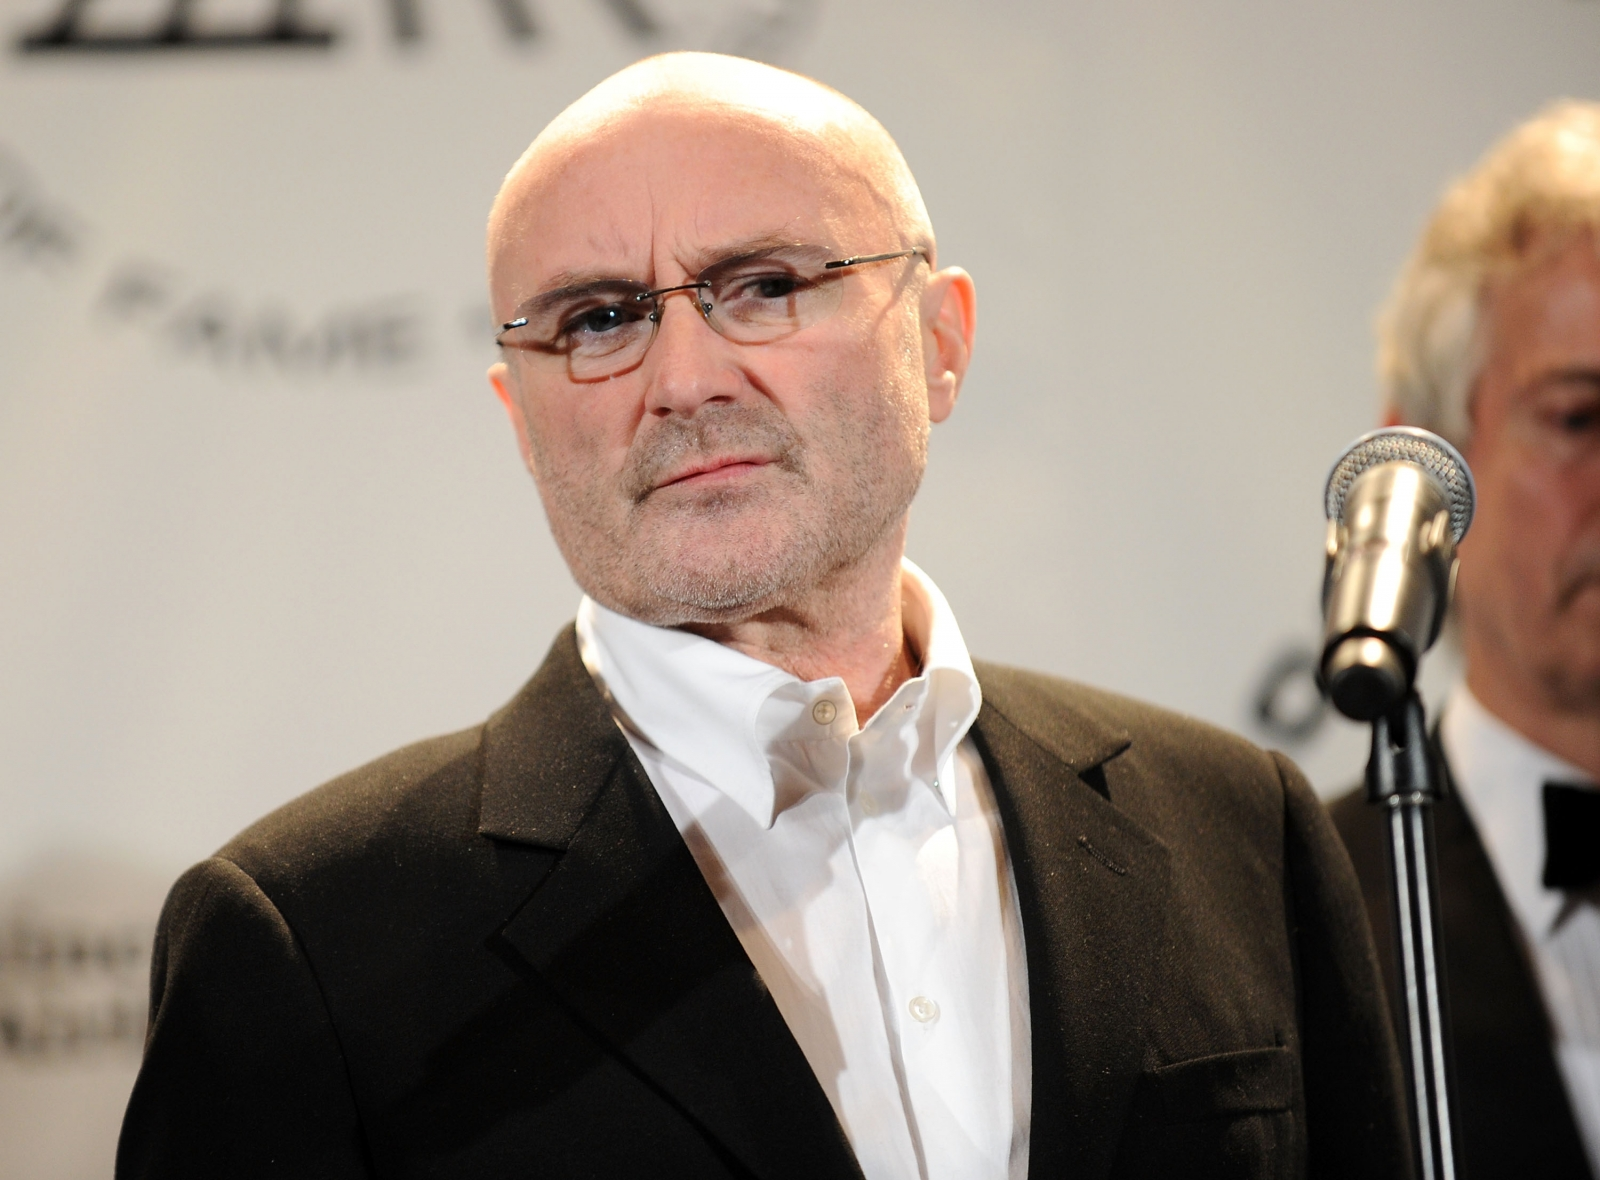 cane with chair hanging hammock indoors phil collins rushed to hospital after 'nasty' fall, cancels london royal albert hall shows